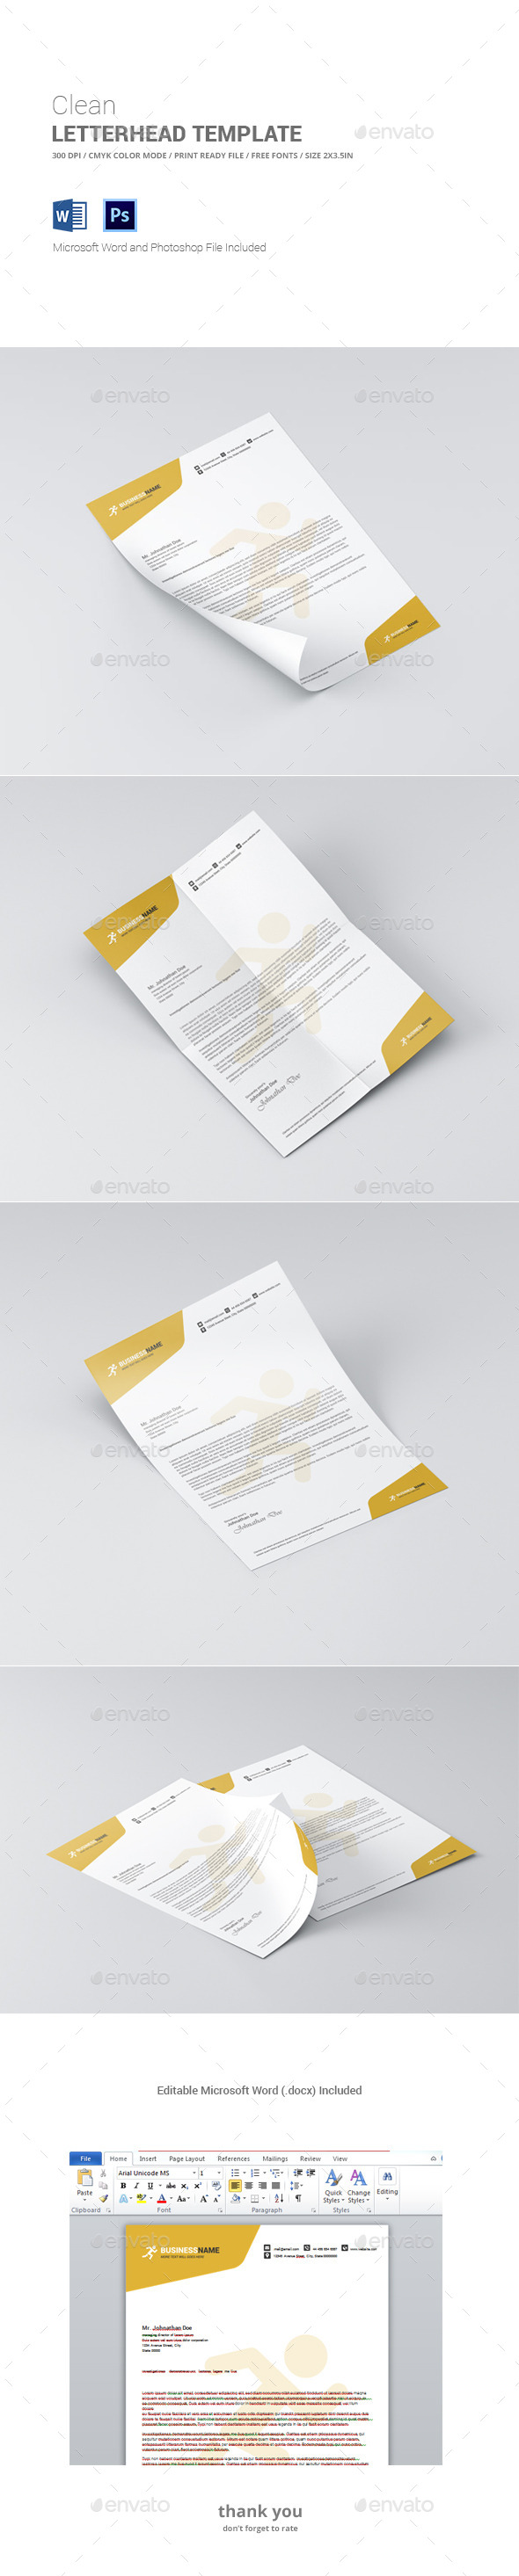 Letterhead Template With MS Word